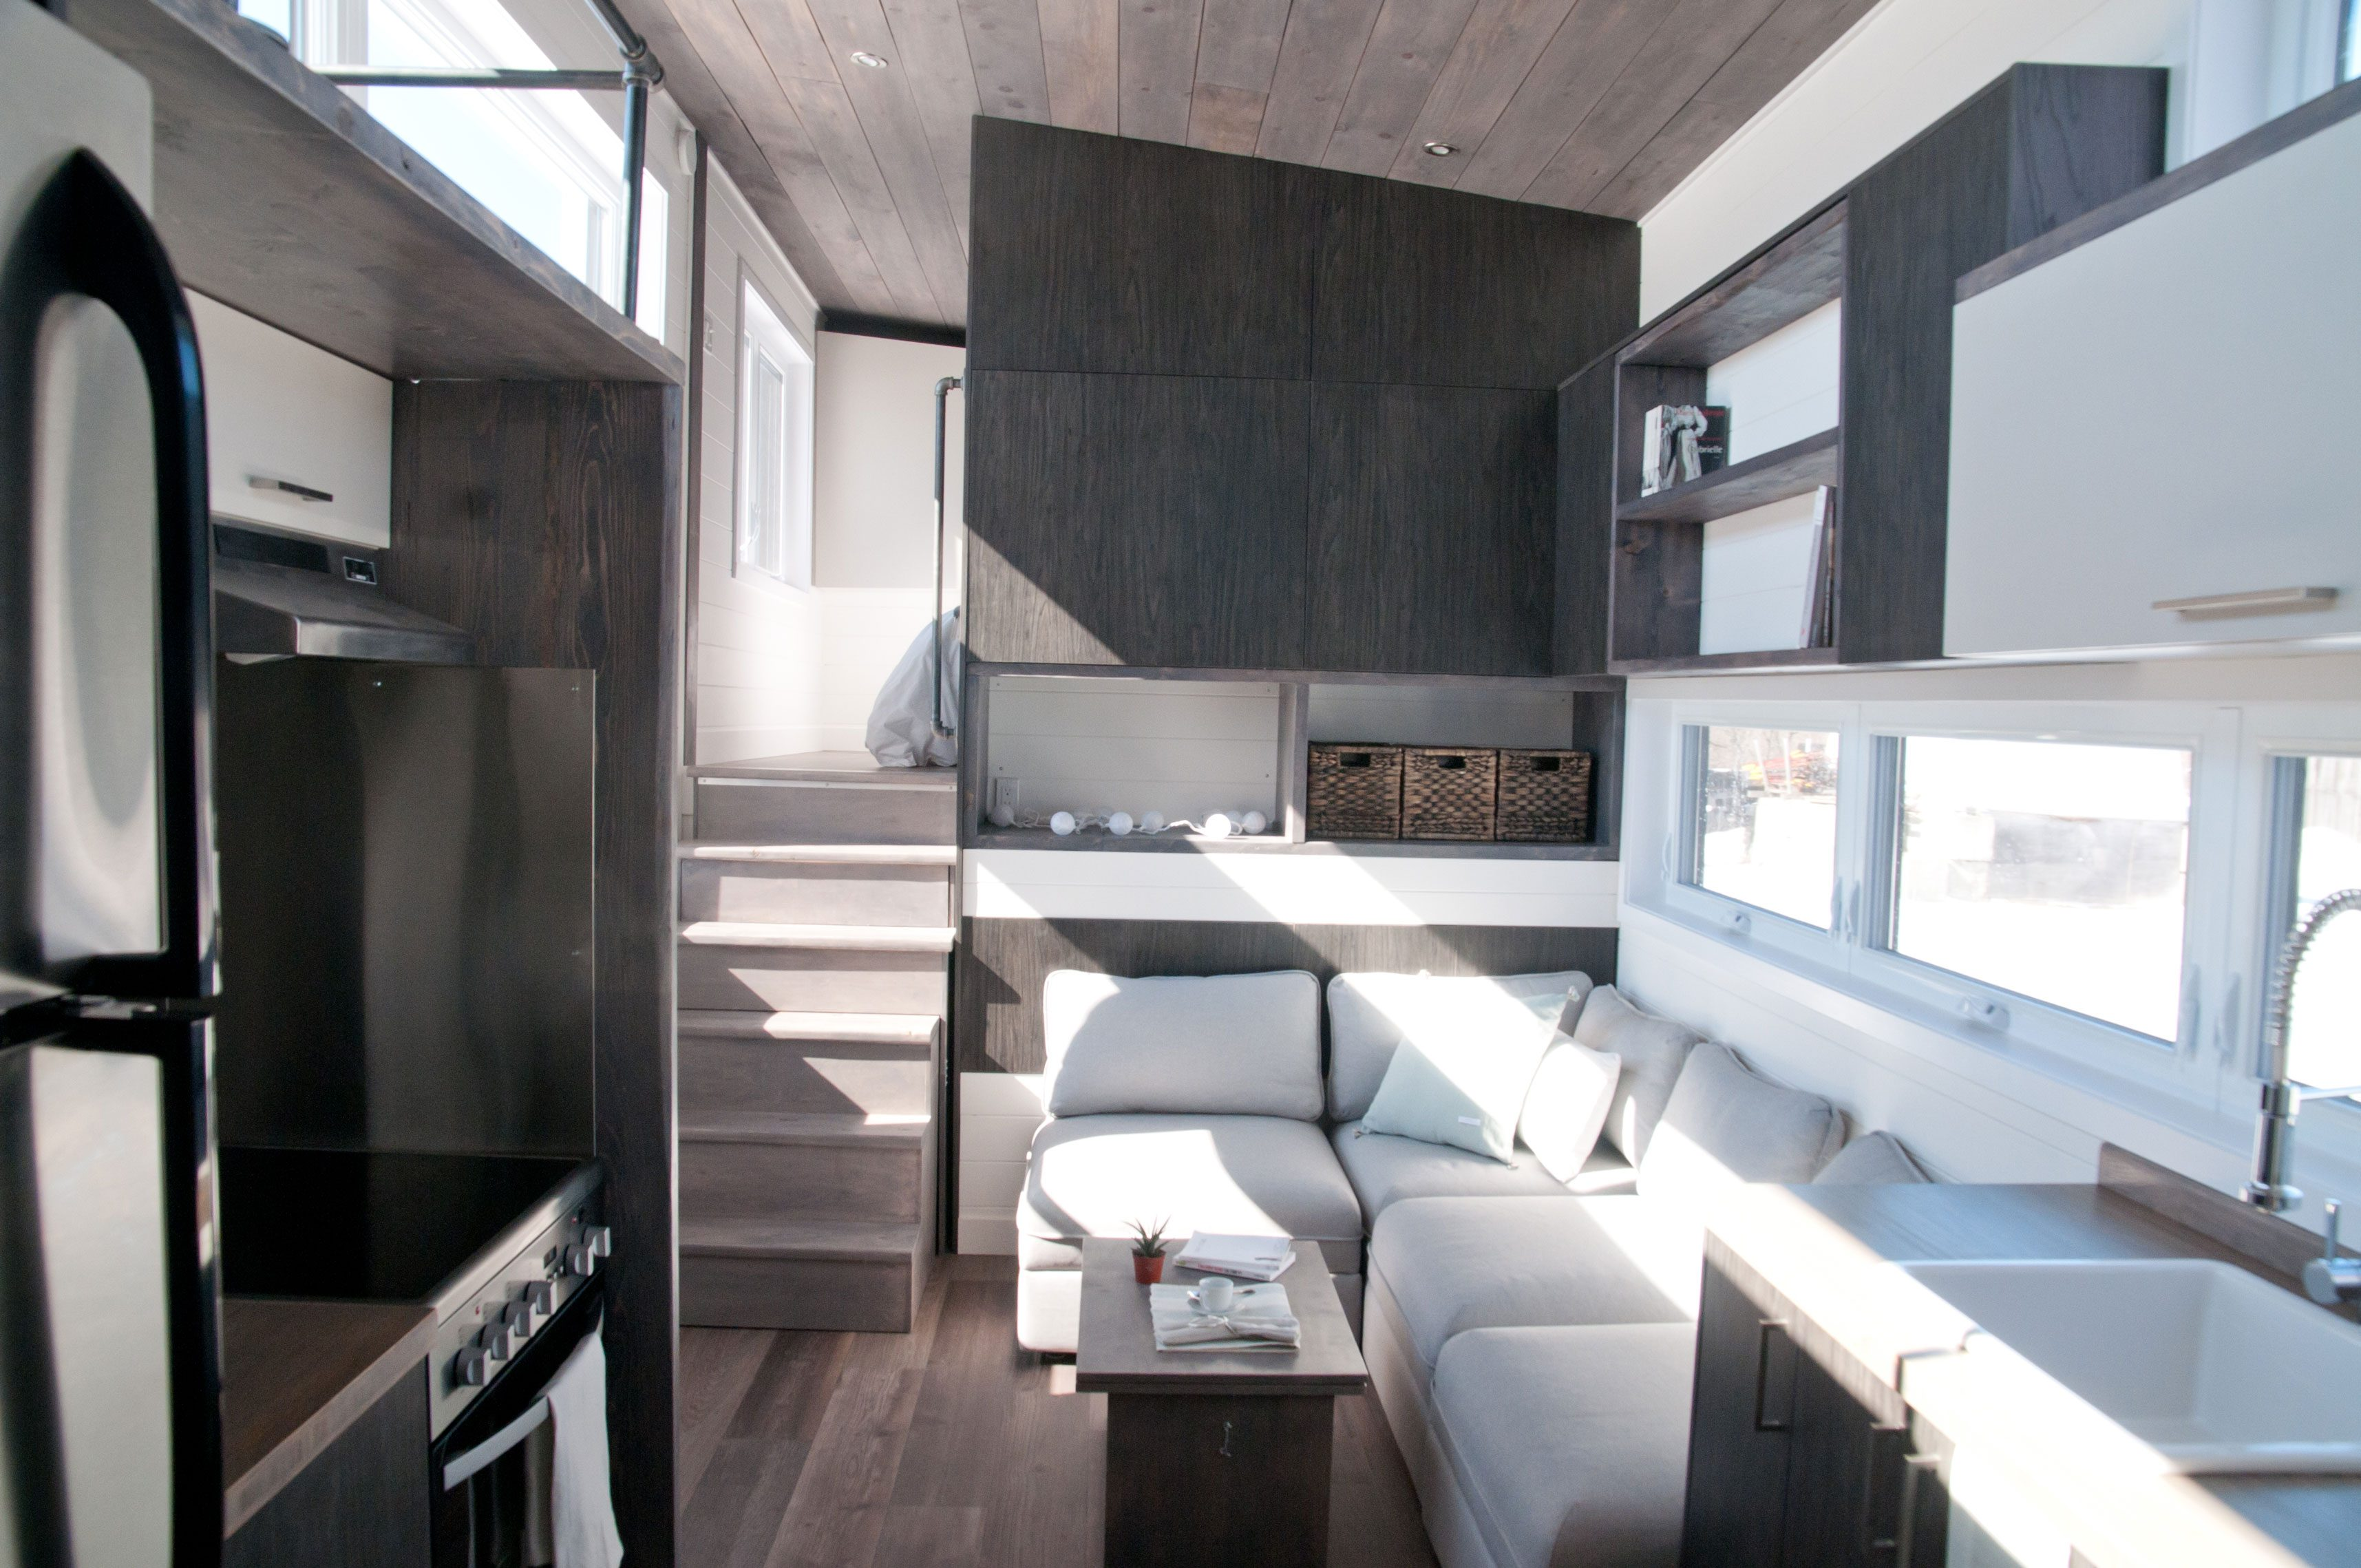 Top Tiny Homes - Sakura inside